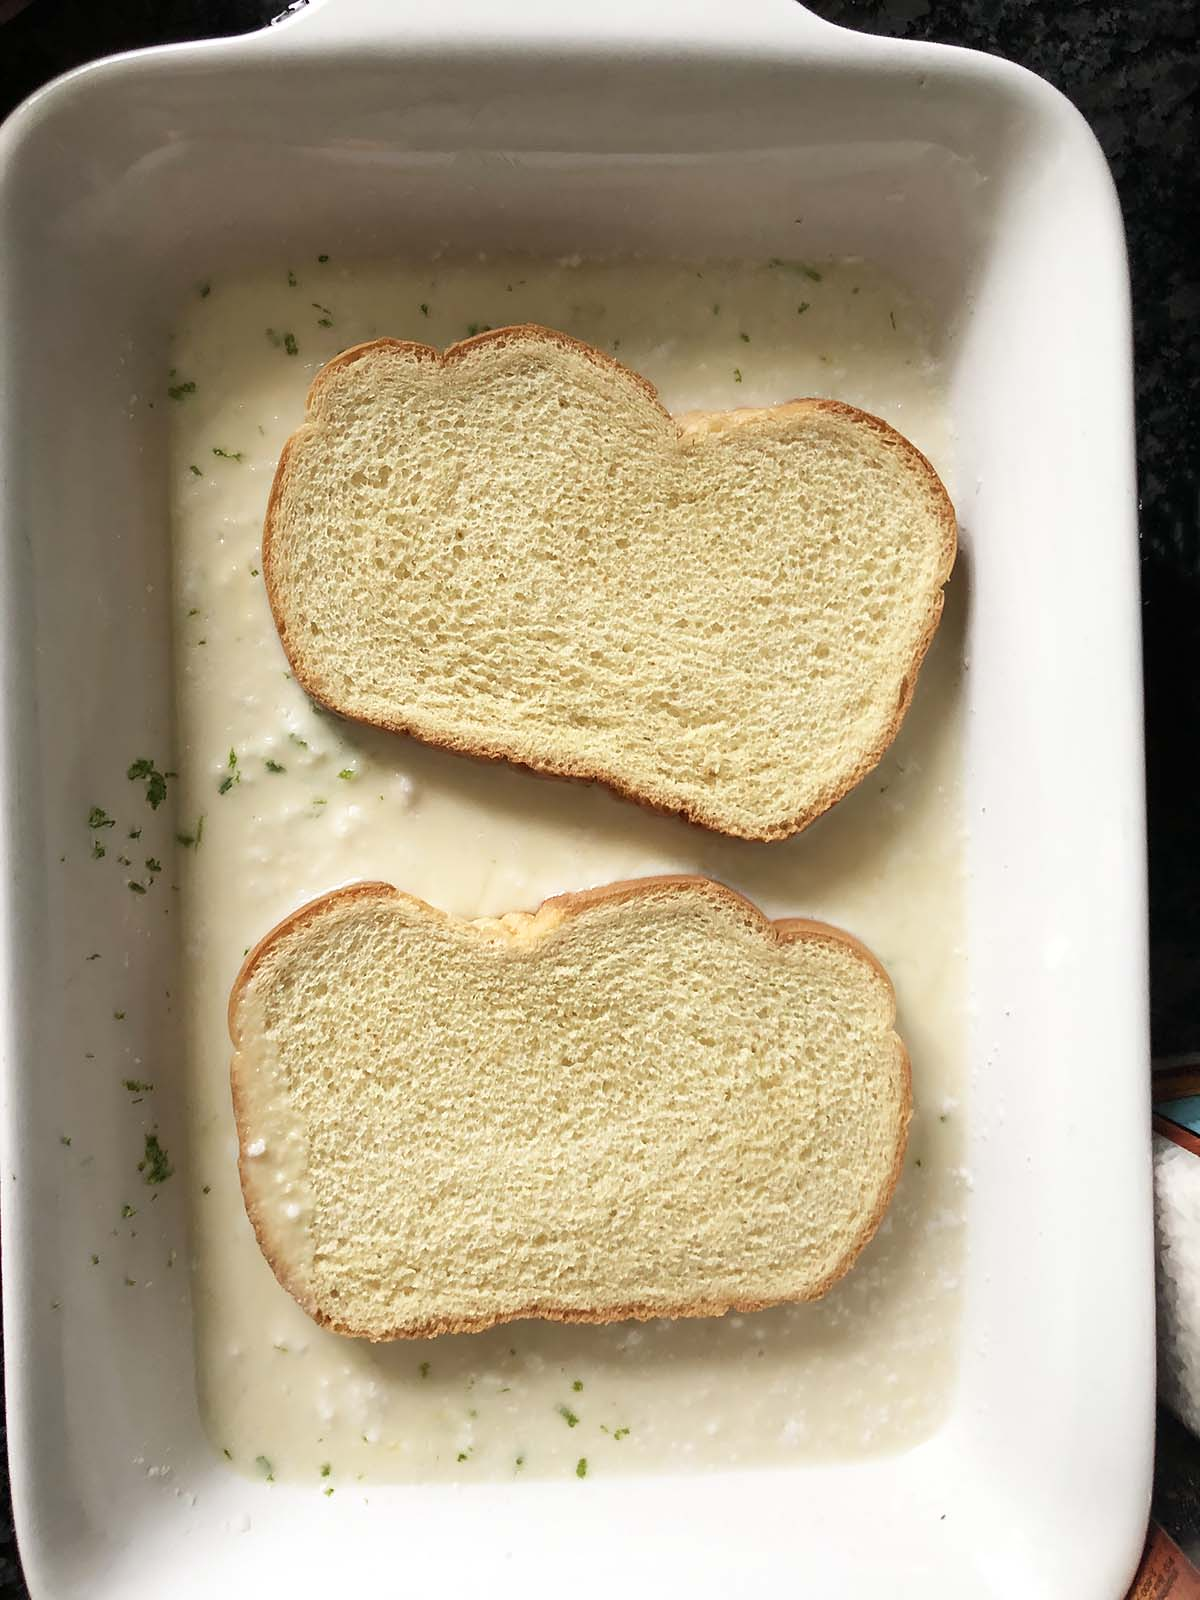 two slices of bread soaking in french toast batter